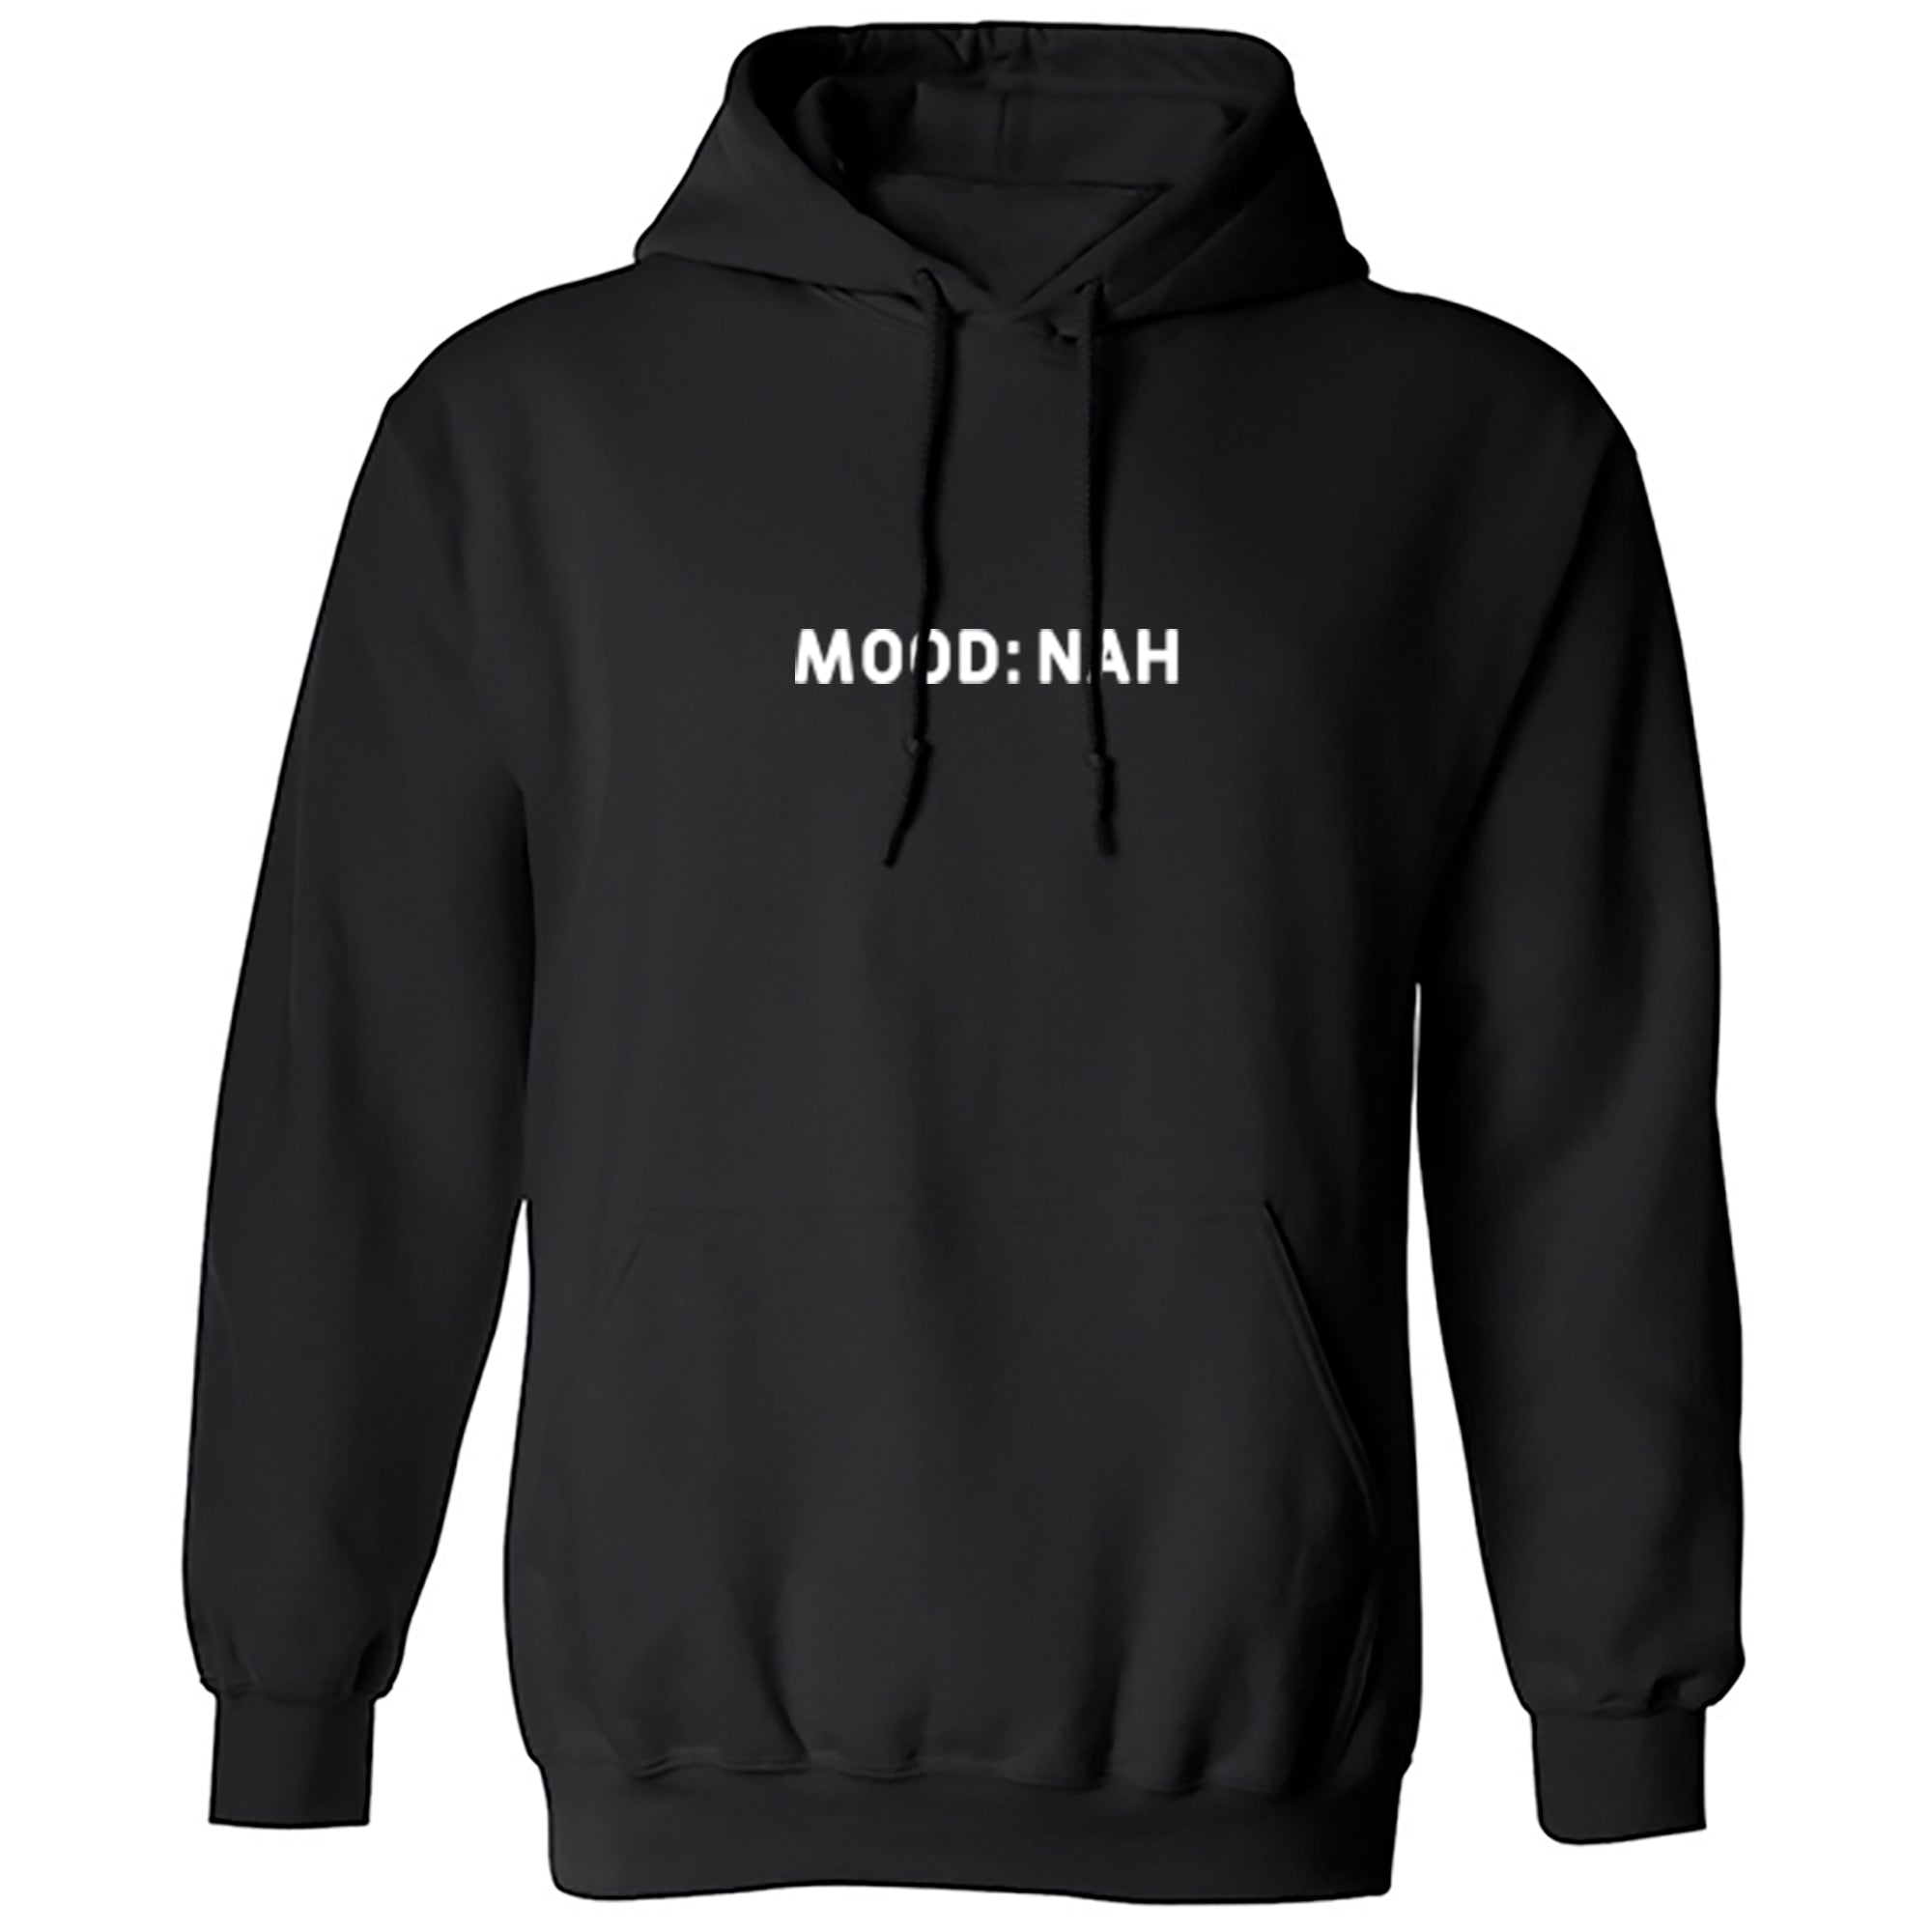 Mood: Nah Unisex Hoodie S1031 - Illustrated Identity Ltd.